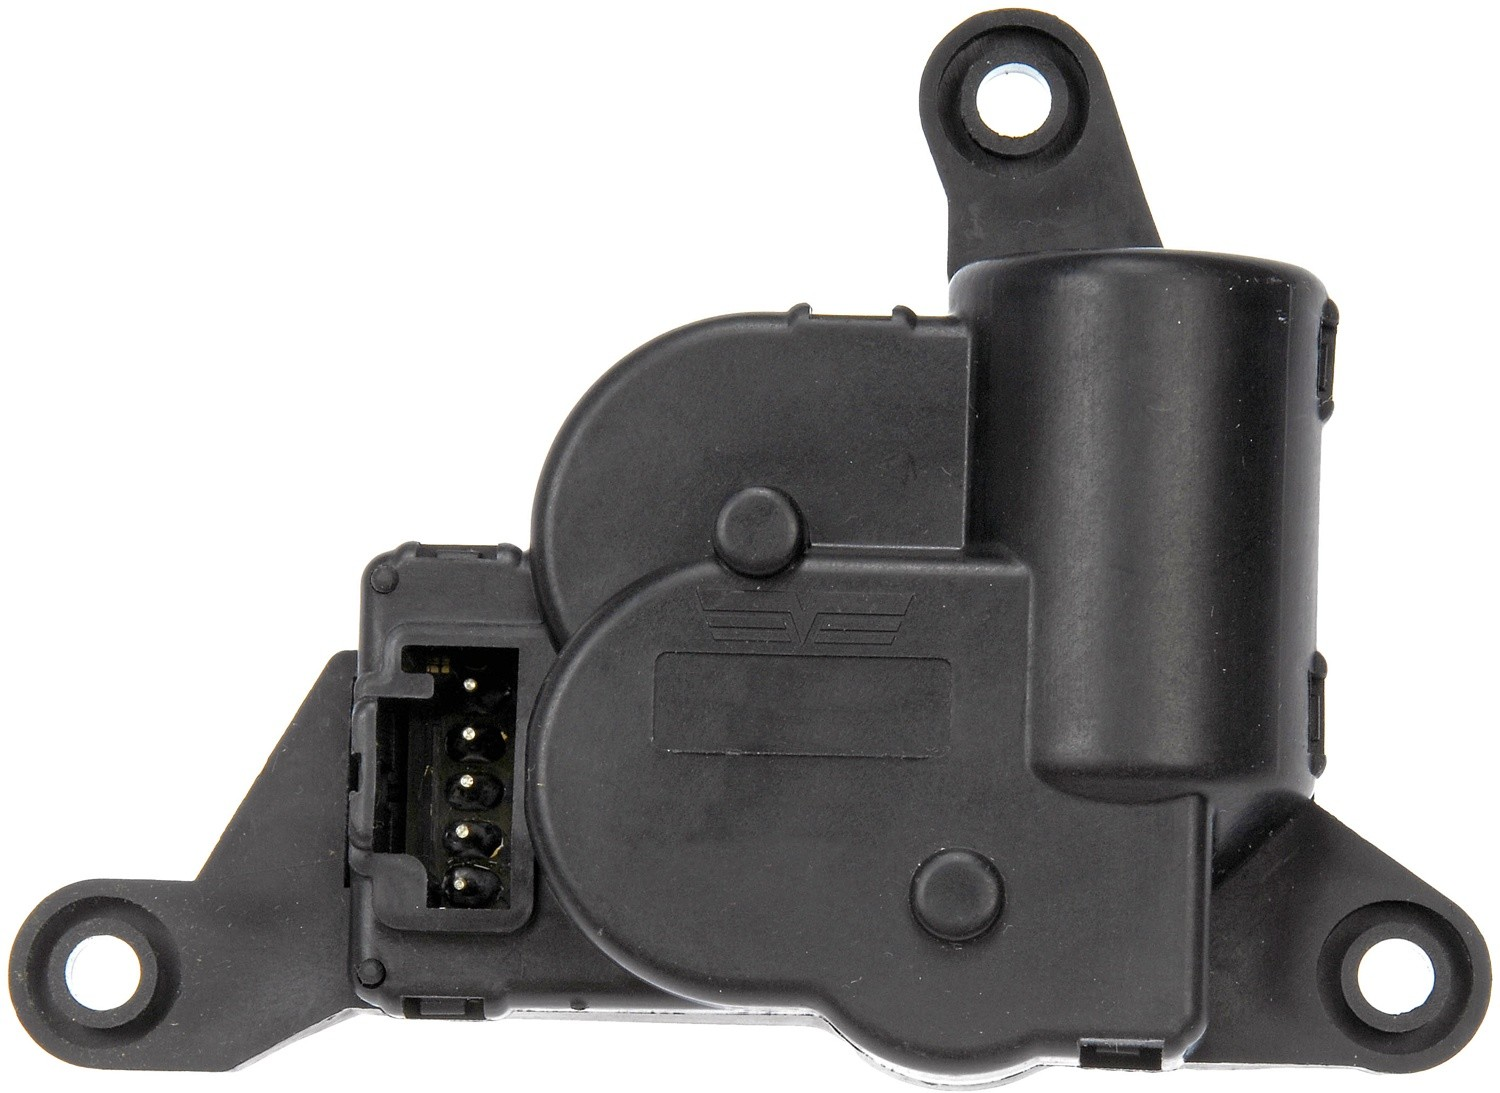 DORMAN OE SOLUTIONS - HVAC Heater Blend Door Actuator - DRE 604-011